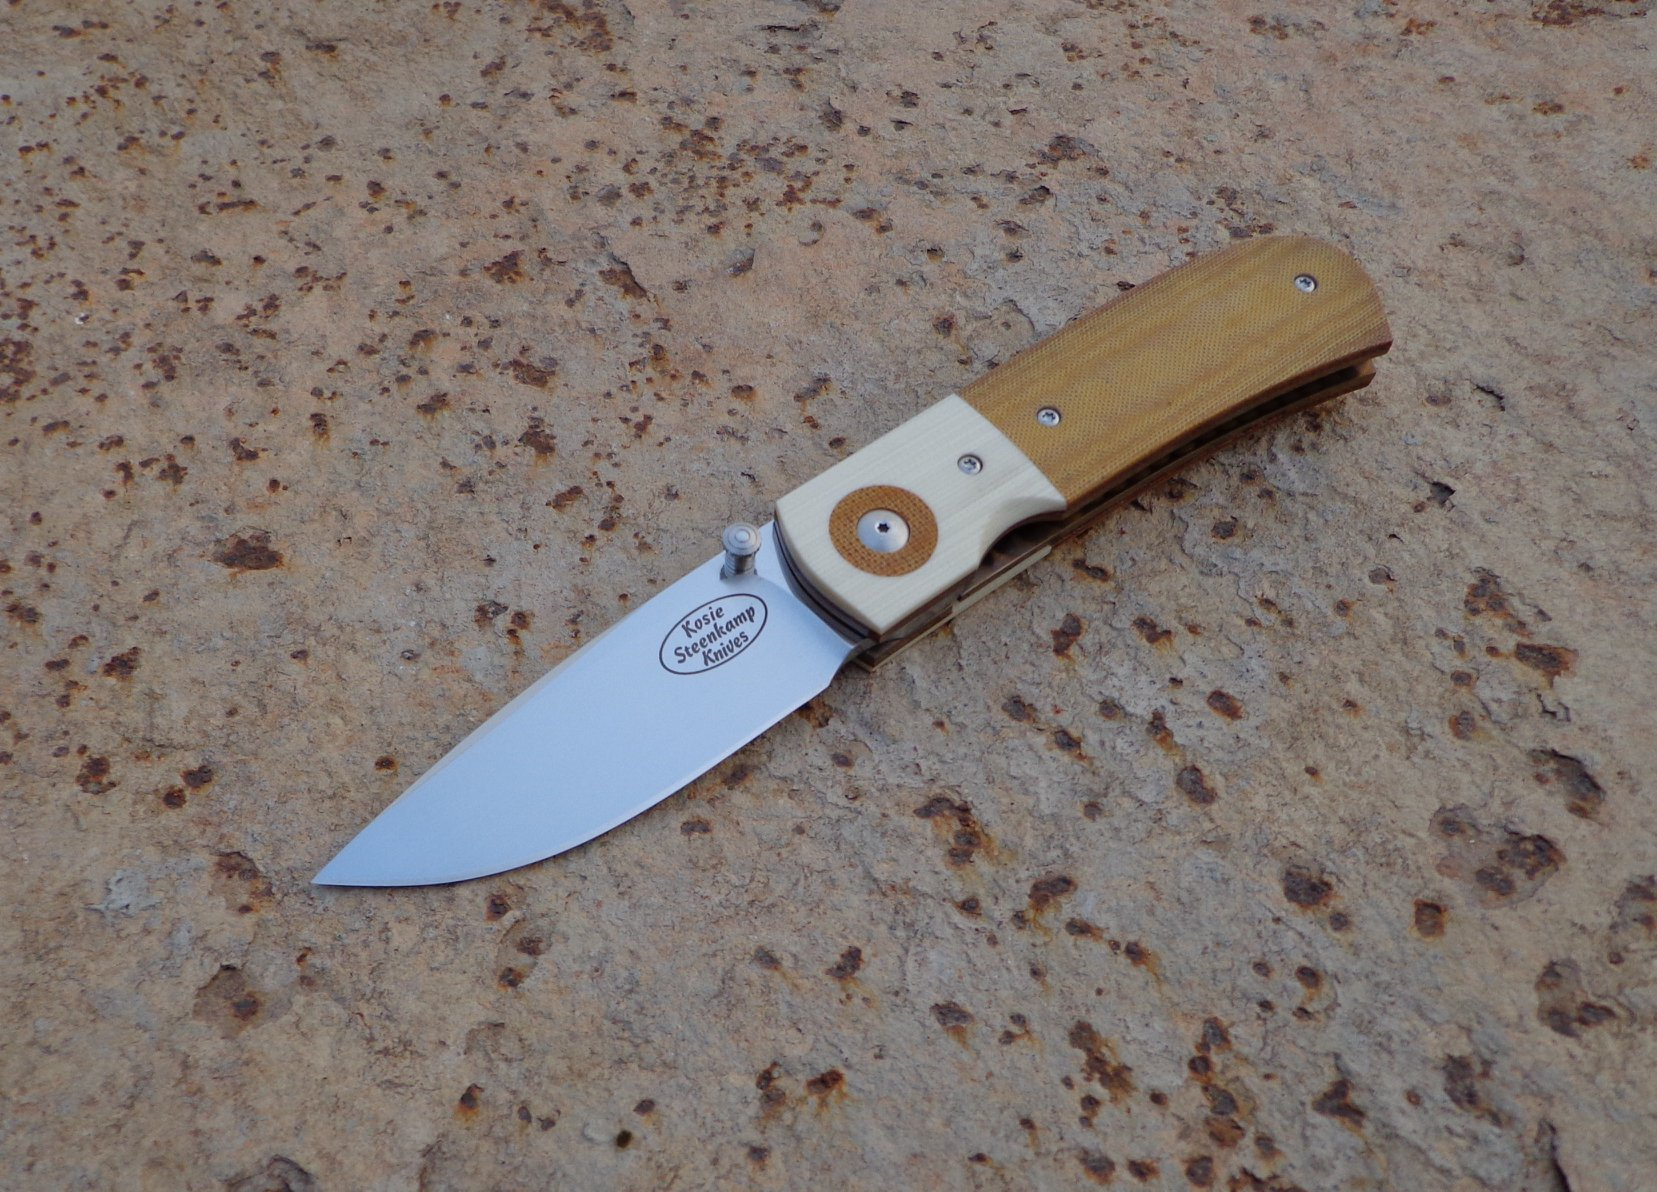 Knife: Sakson Junior Liner Lock. Blade: Böhler N690 Stainless Steel. Handle scales: G10 and Micarta. Liners and pocket clip: Titanium, anodized golden.